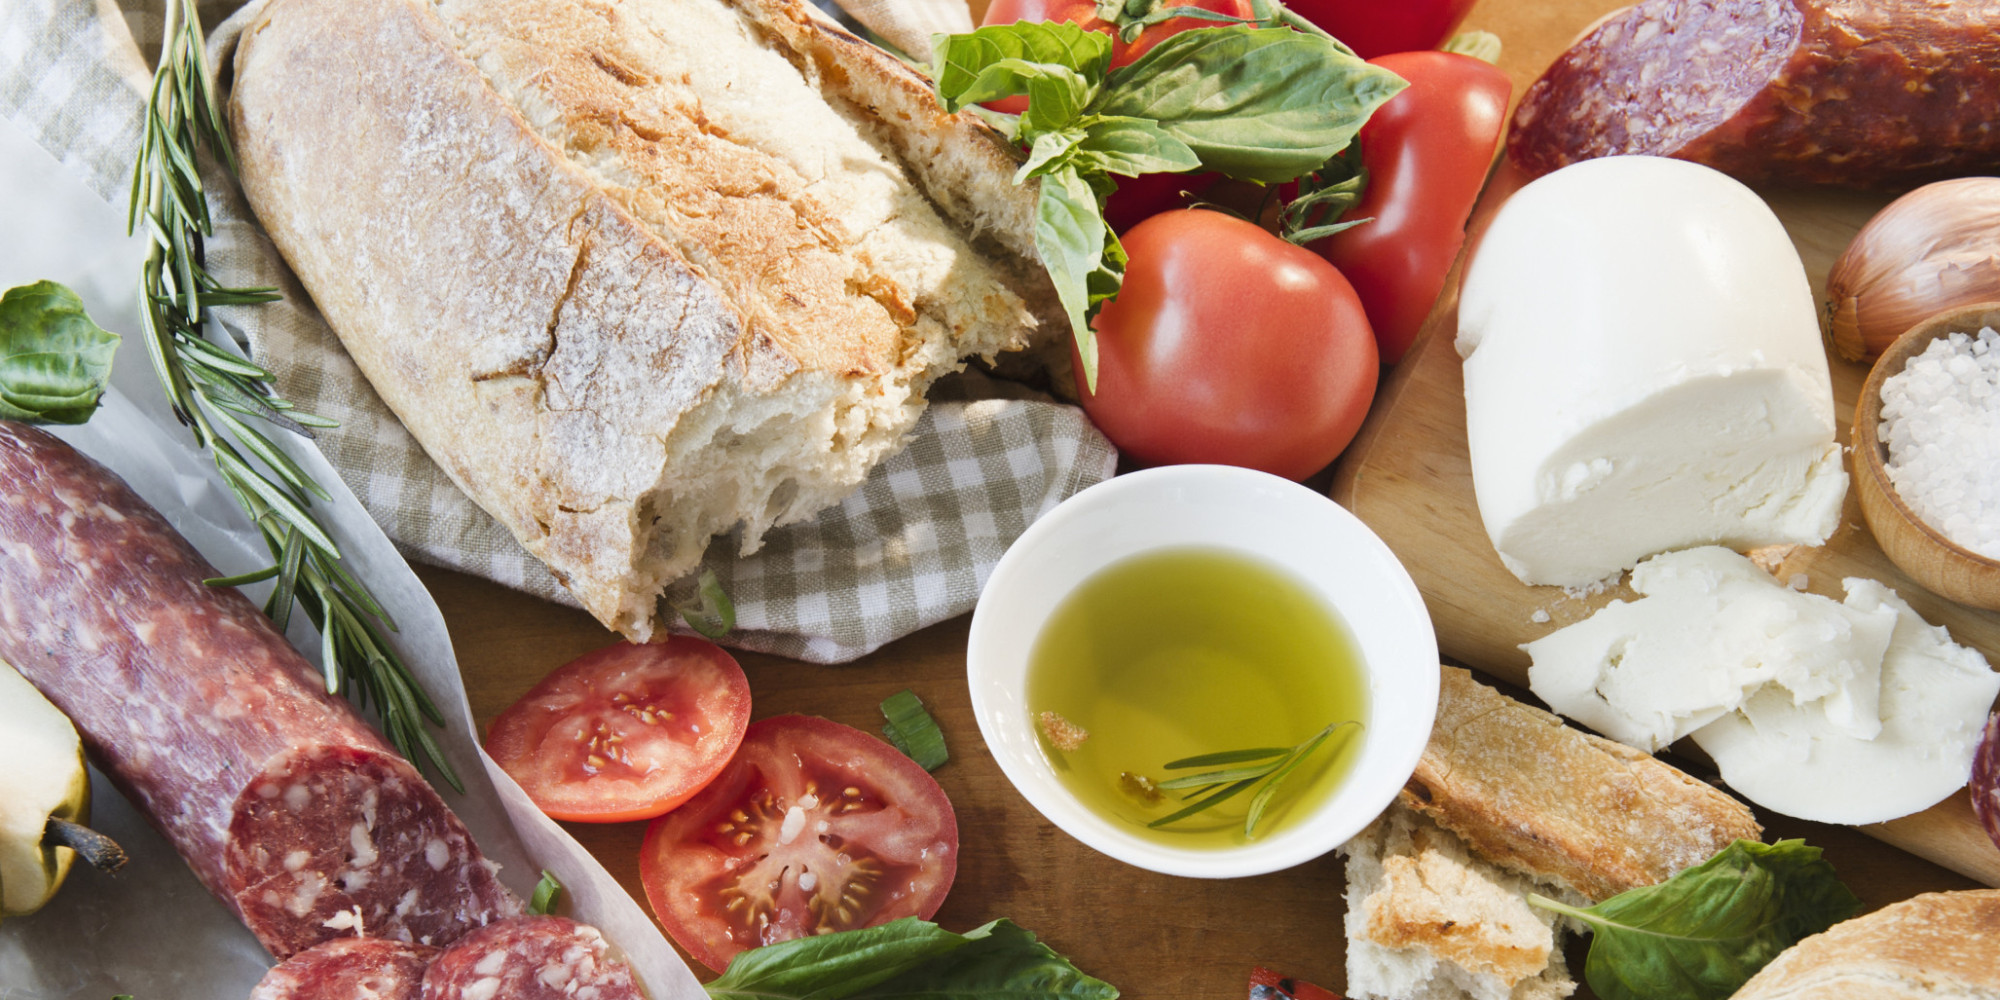 Italian cuisine and its intricacies huffpost for About italian cuisine